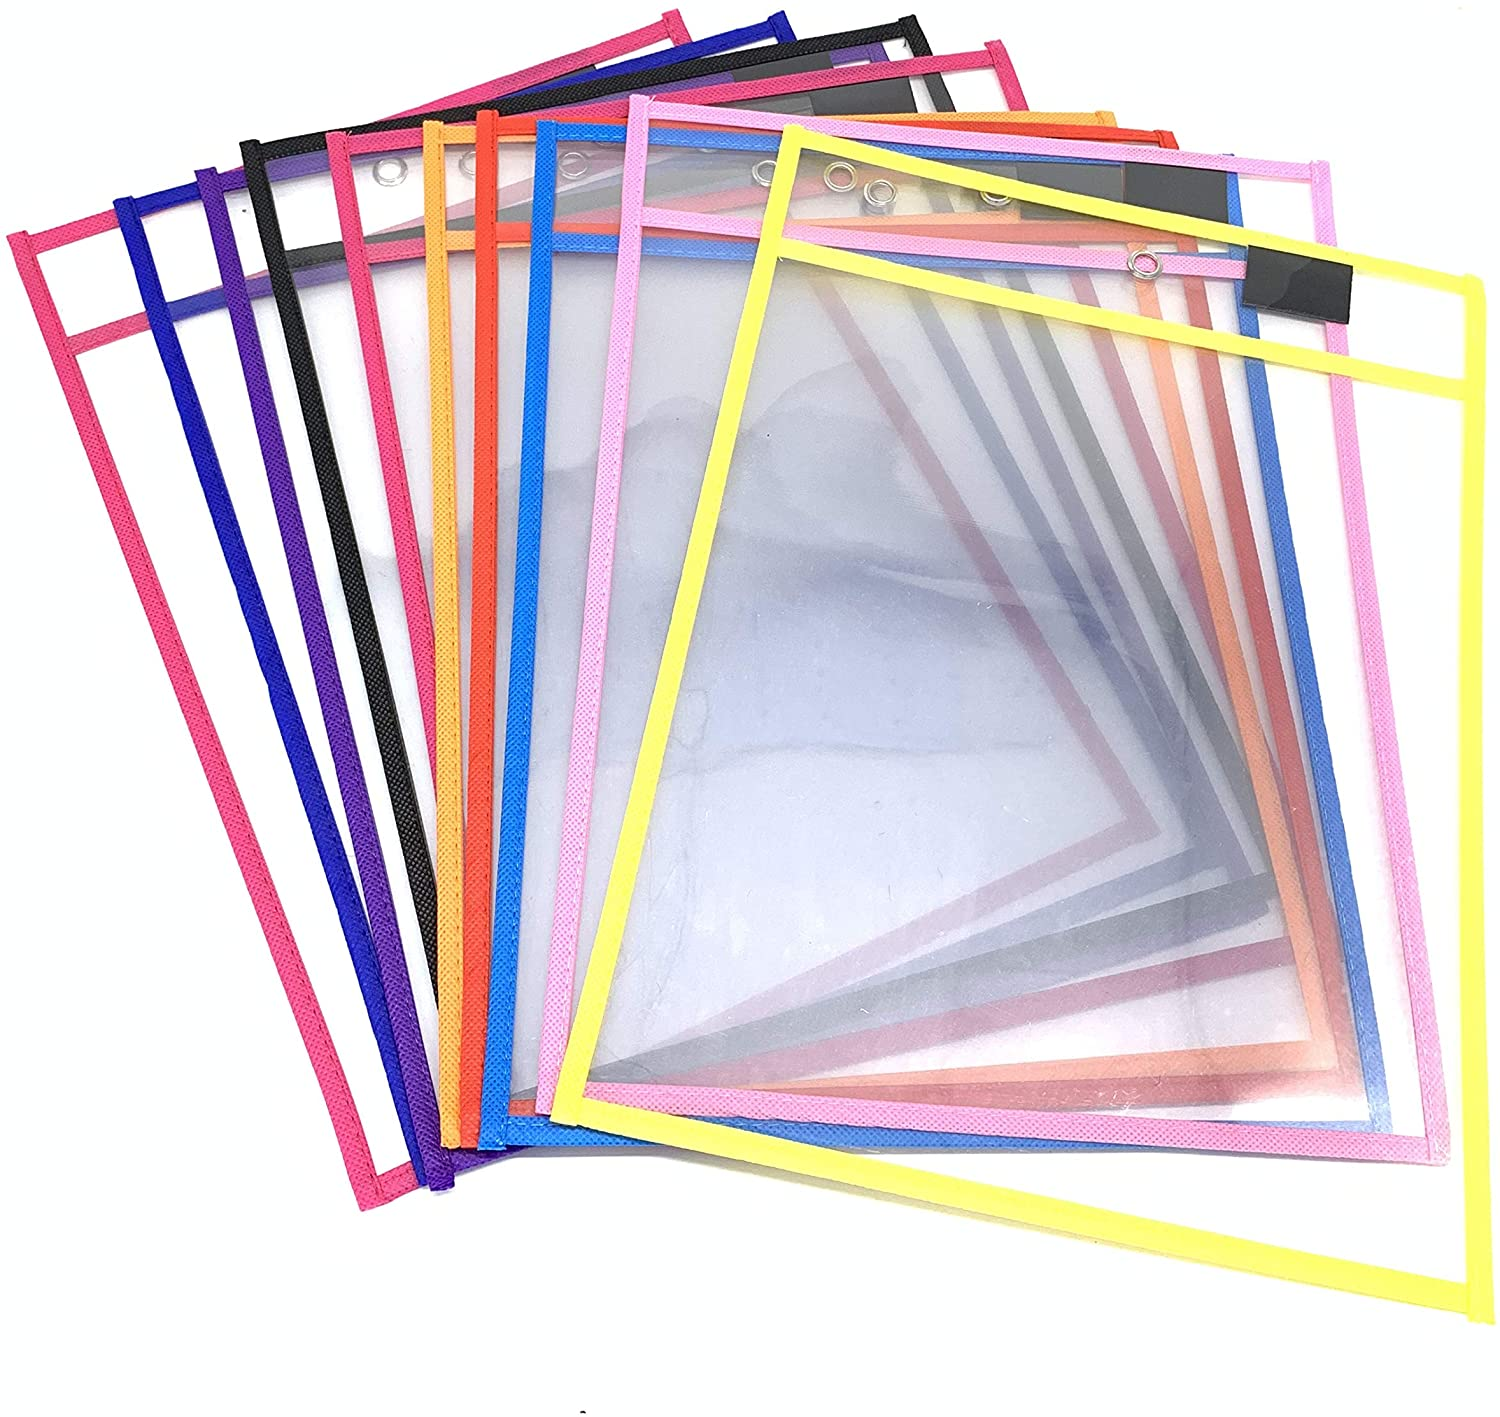 10 Pack Dry Erase Pockets, Reusable Dry Erase Pockets,Clear Durable Plastic Sleeves for Classroom Organization, Teacher and School Supplies,Assorted Colors10.5